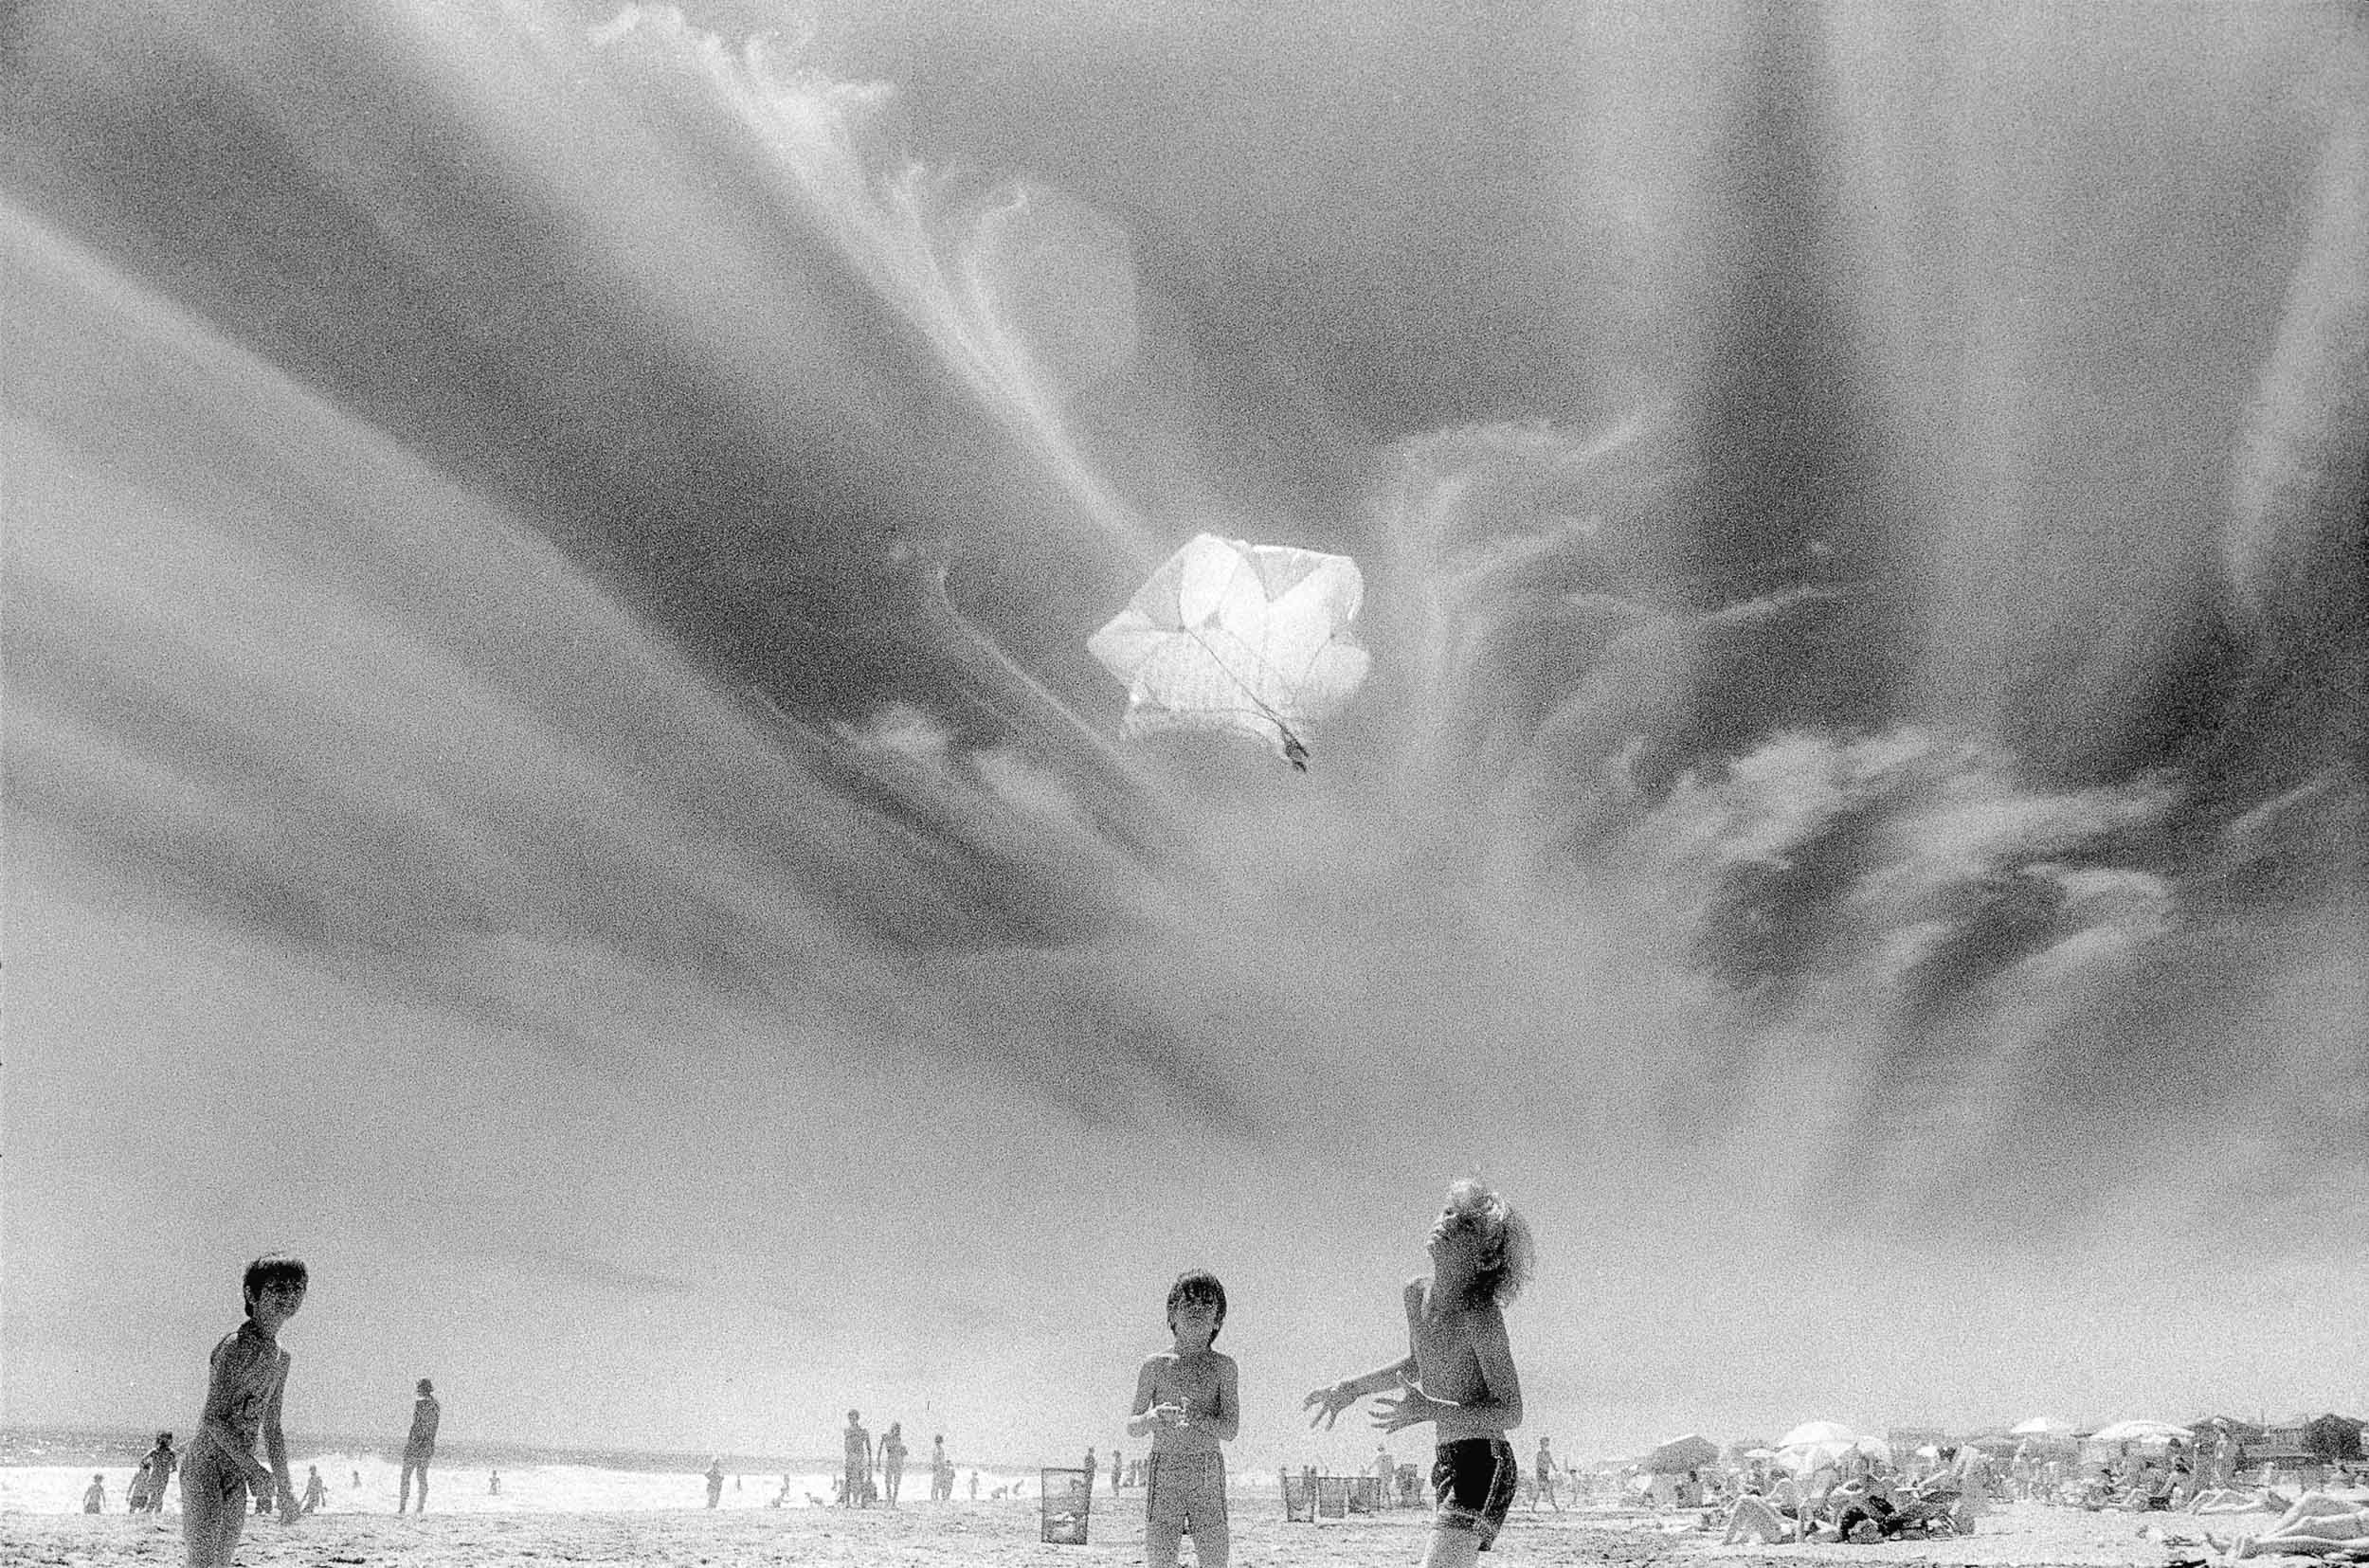 Barbara Alper- Photo of kids tossing up a toy parachute into clouds at Rockaway Beach NYC